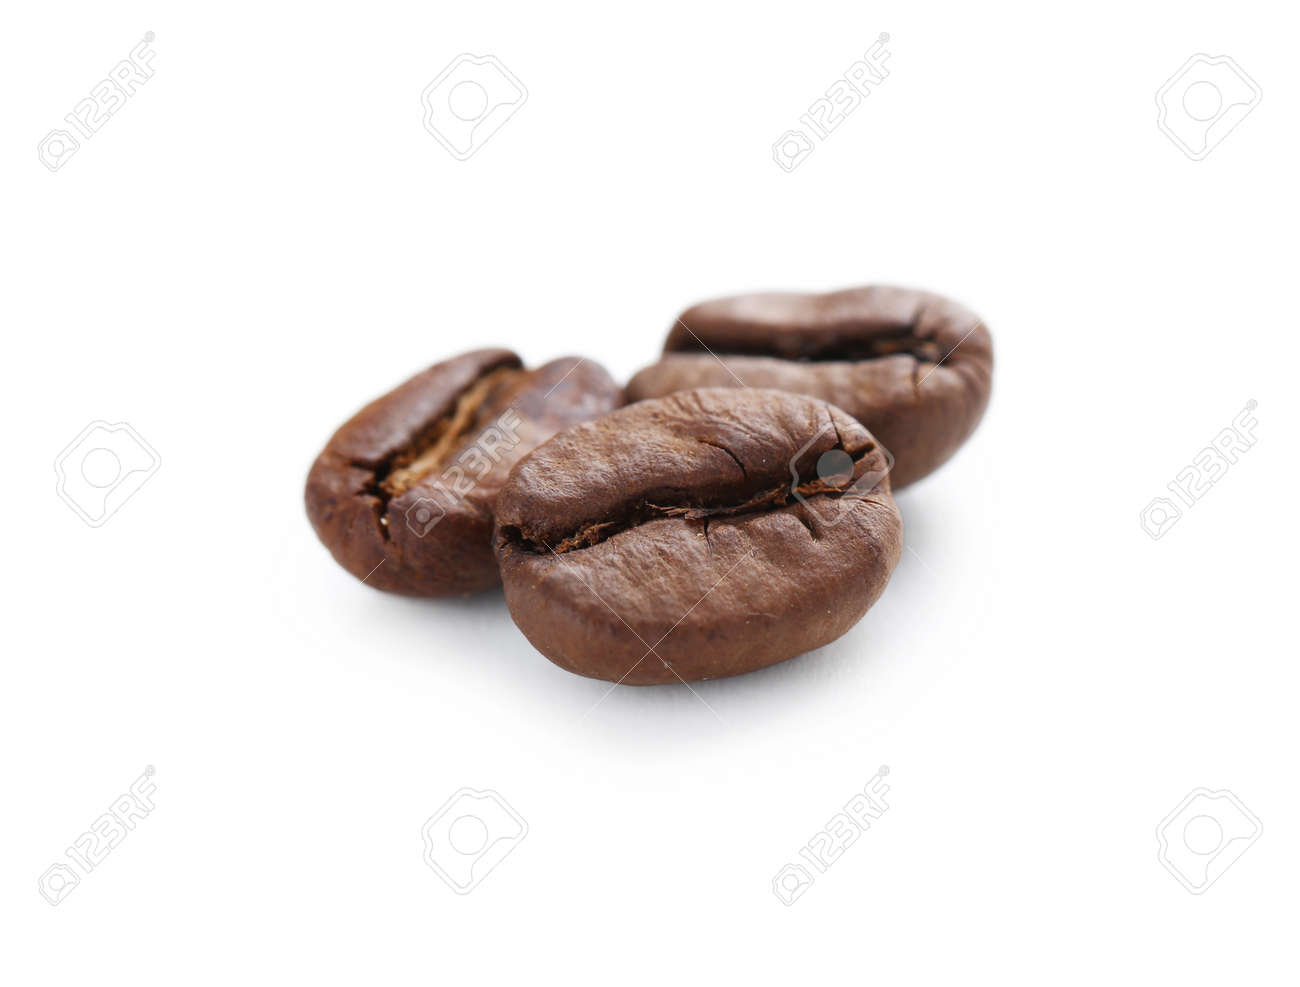 Roasted coffee beans isolated on a white - 58477169